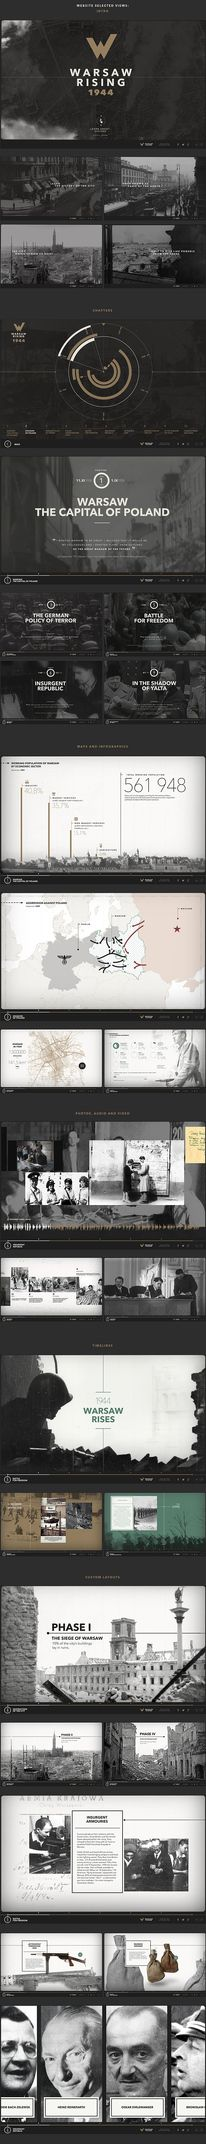 Warsaw Rising – learn about the history of the city once known as Paris of the north. — Designspiration